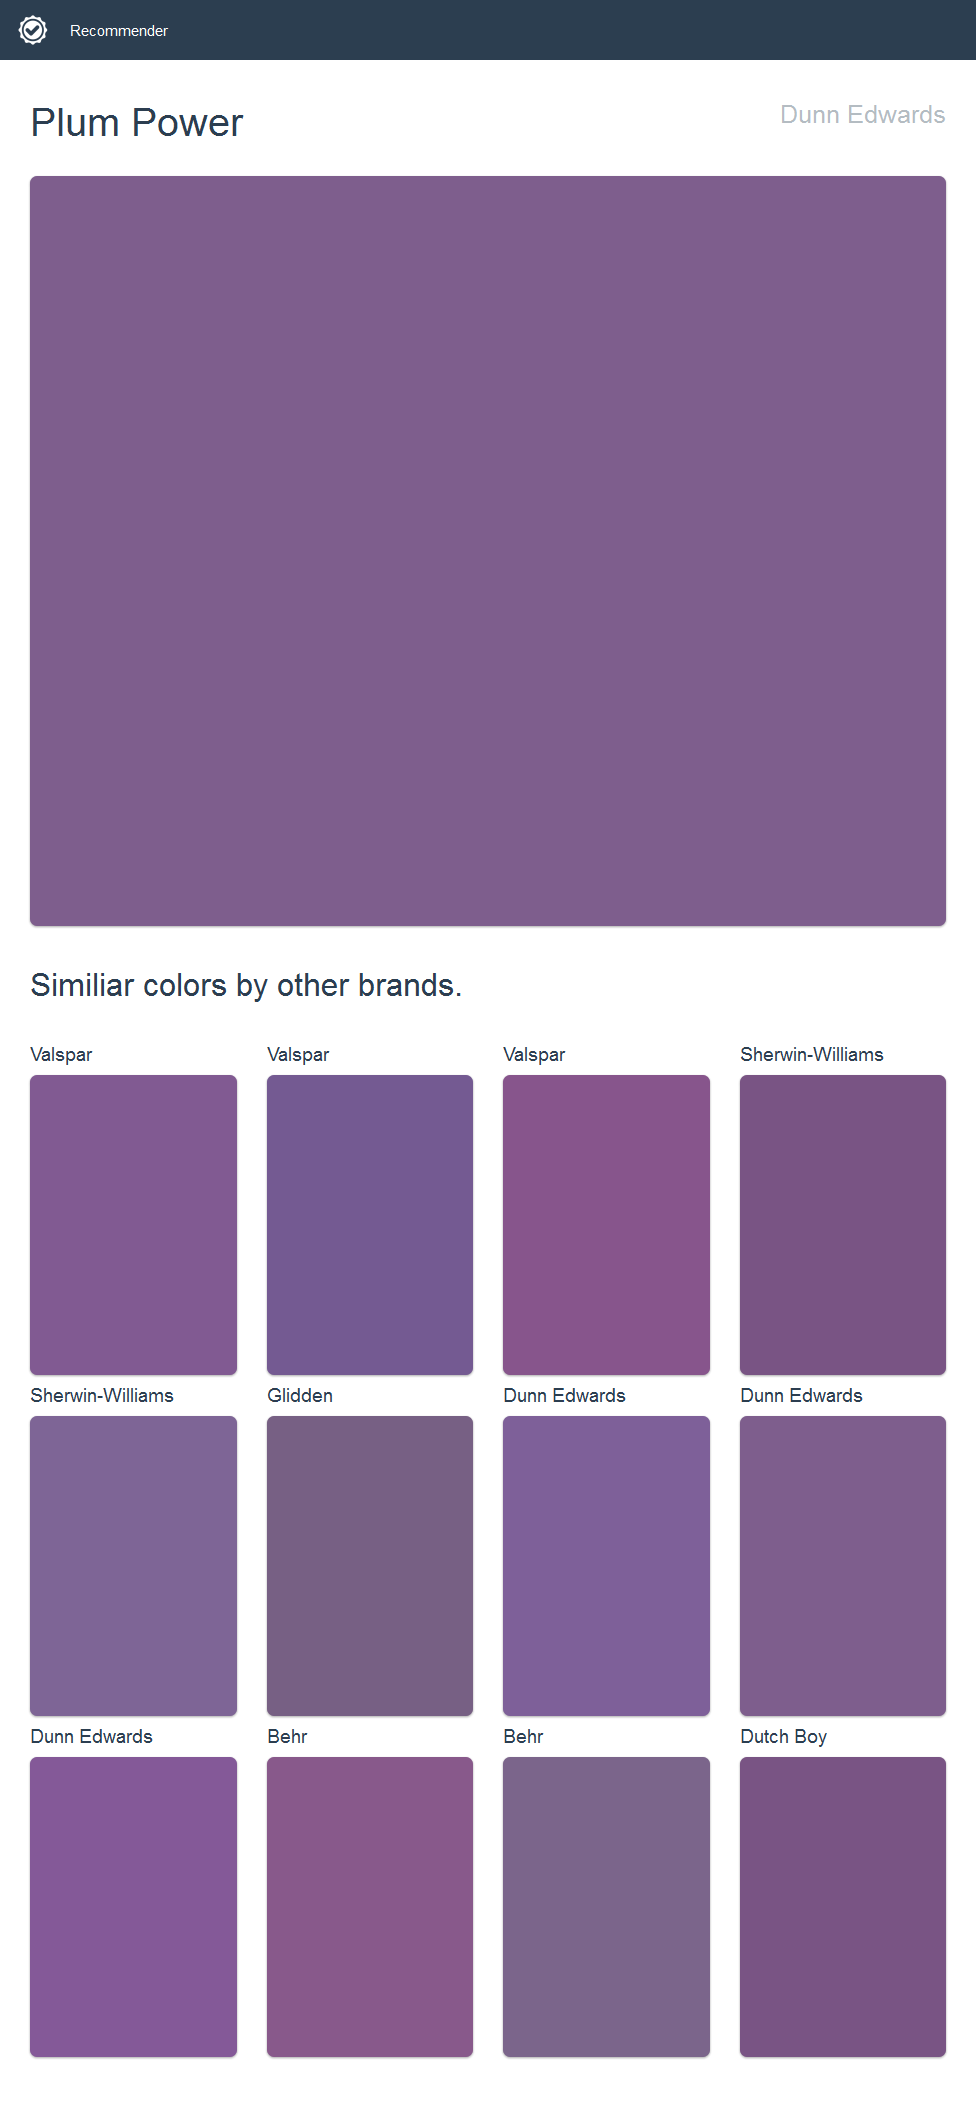 Plum Power, Dunn Edwards. Click the image to see similiar colors by other brands.